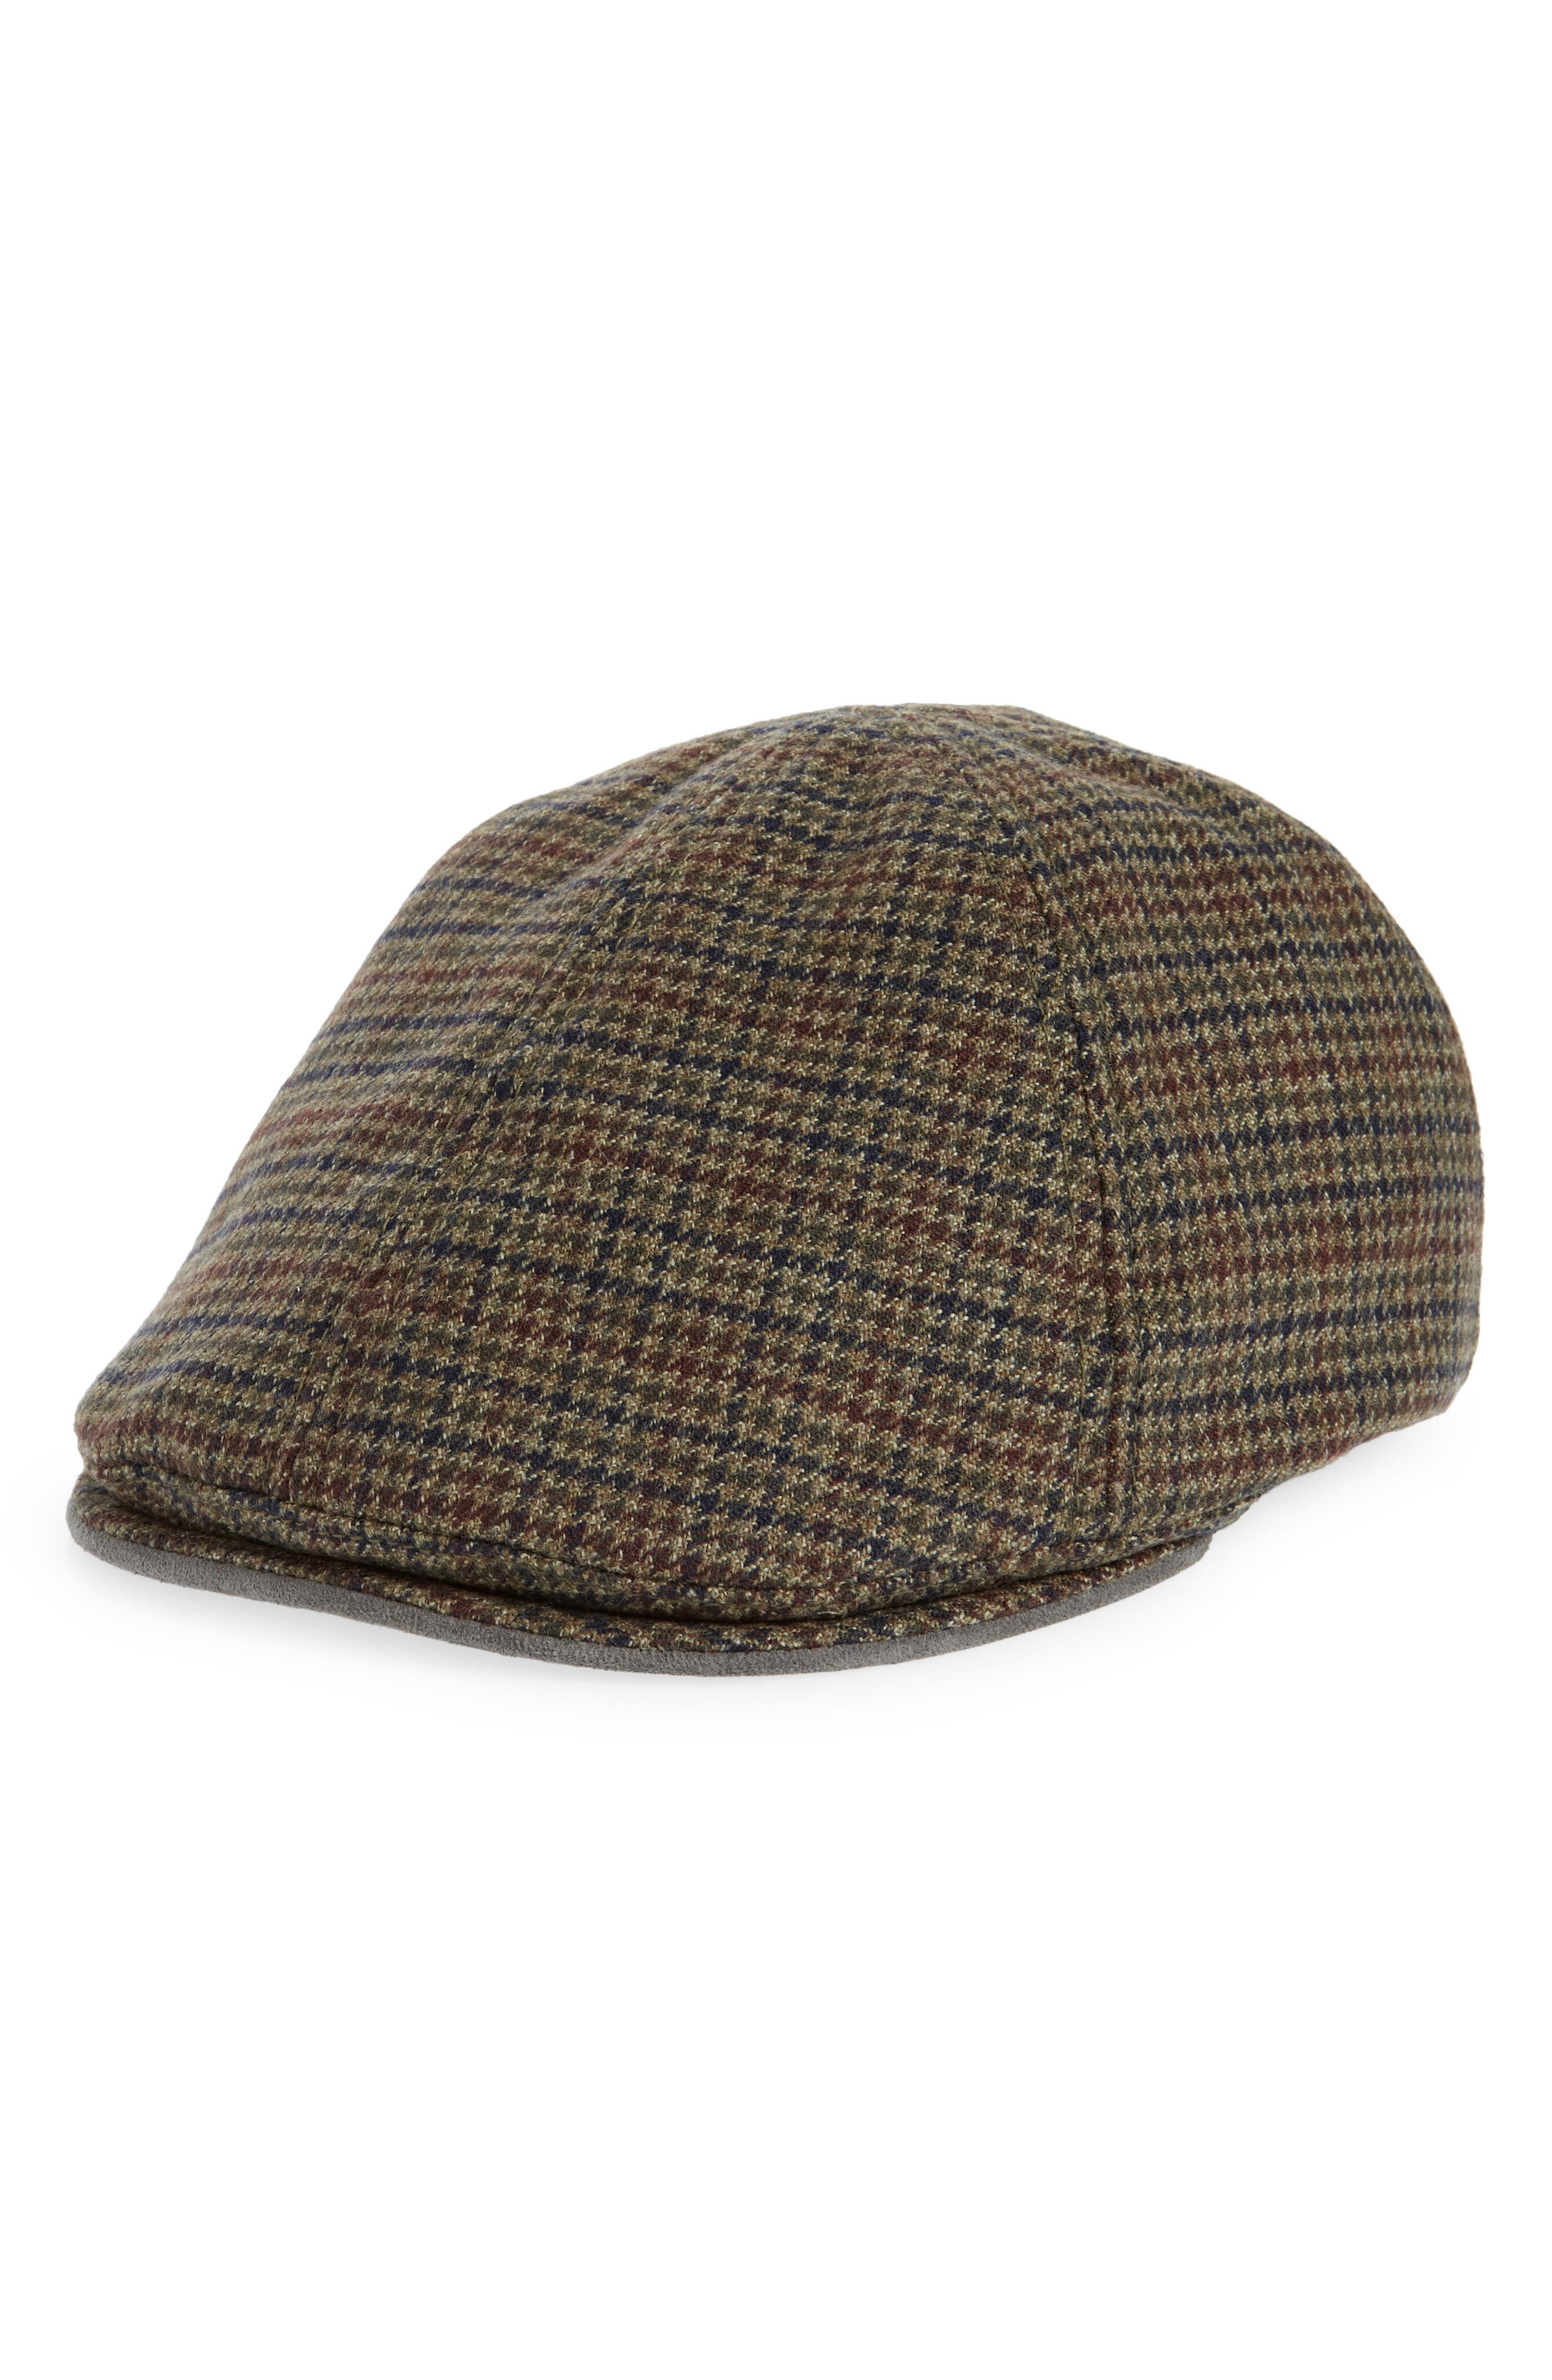 . Pacheco Houndstooth Wool Driving Cap